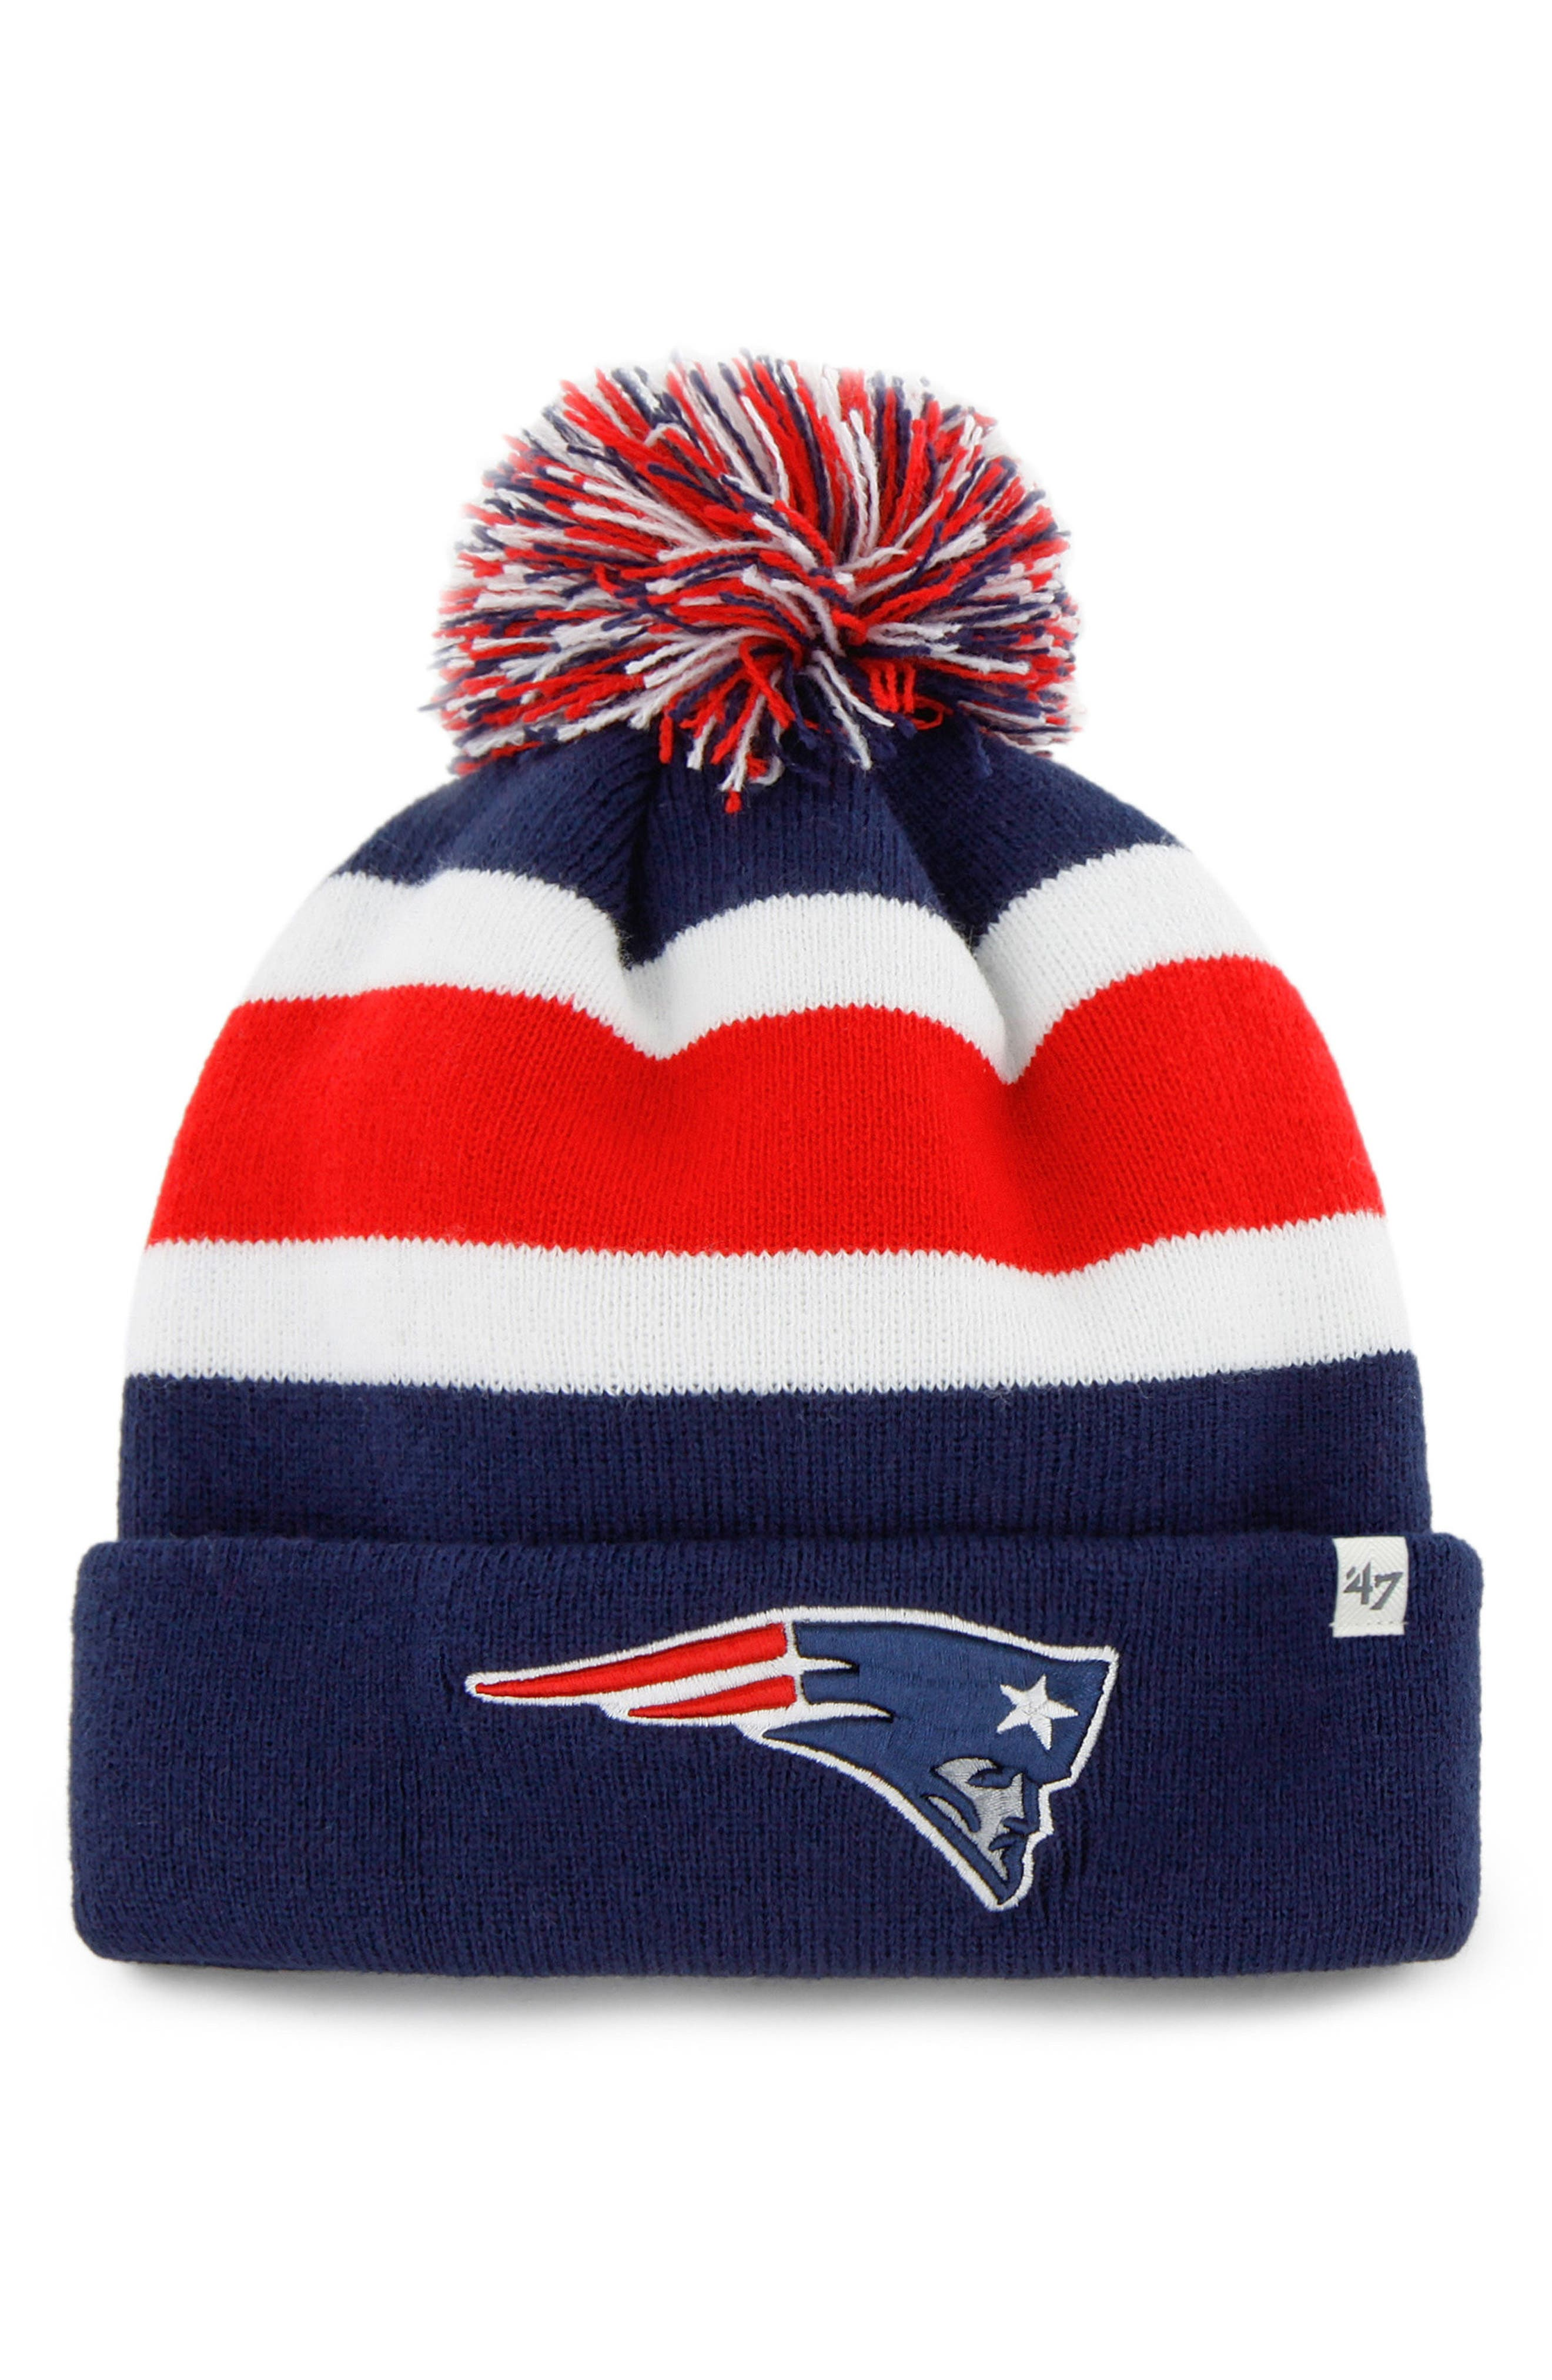 NFL Breakaway Knit Cap,                             Main thumbnail 4, color,